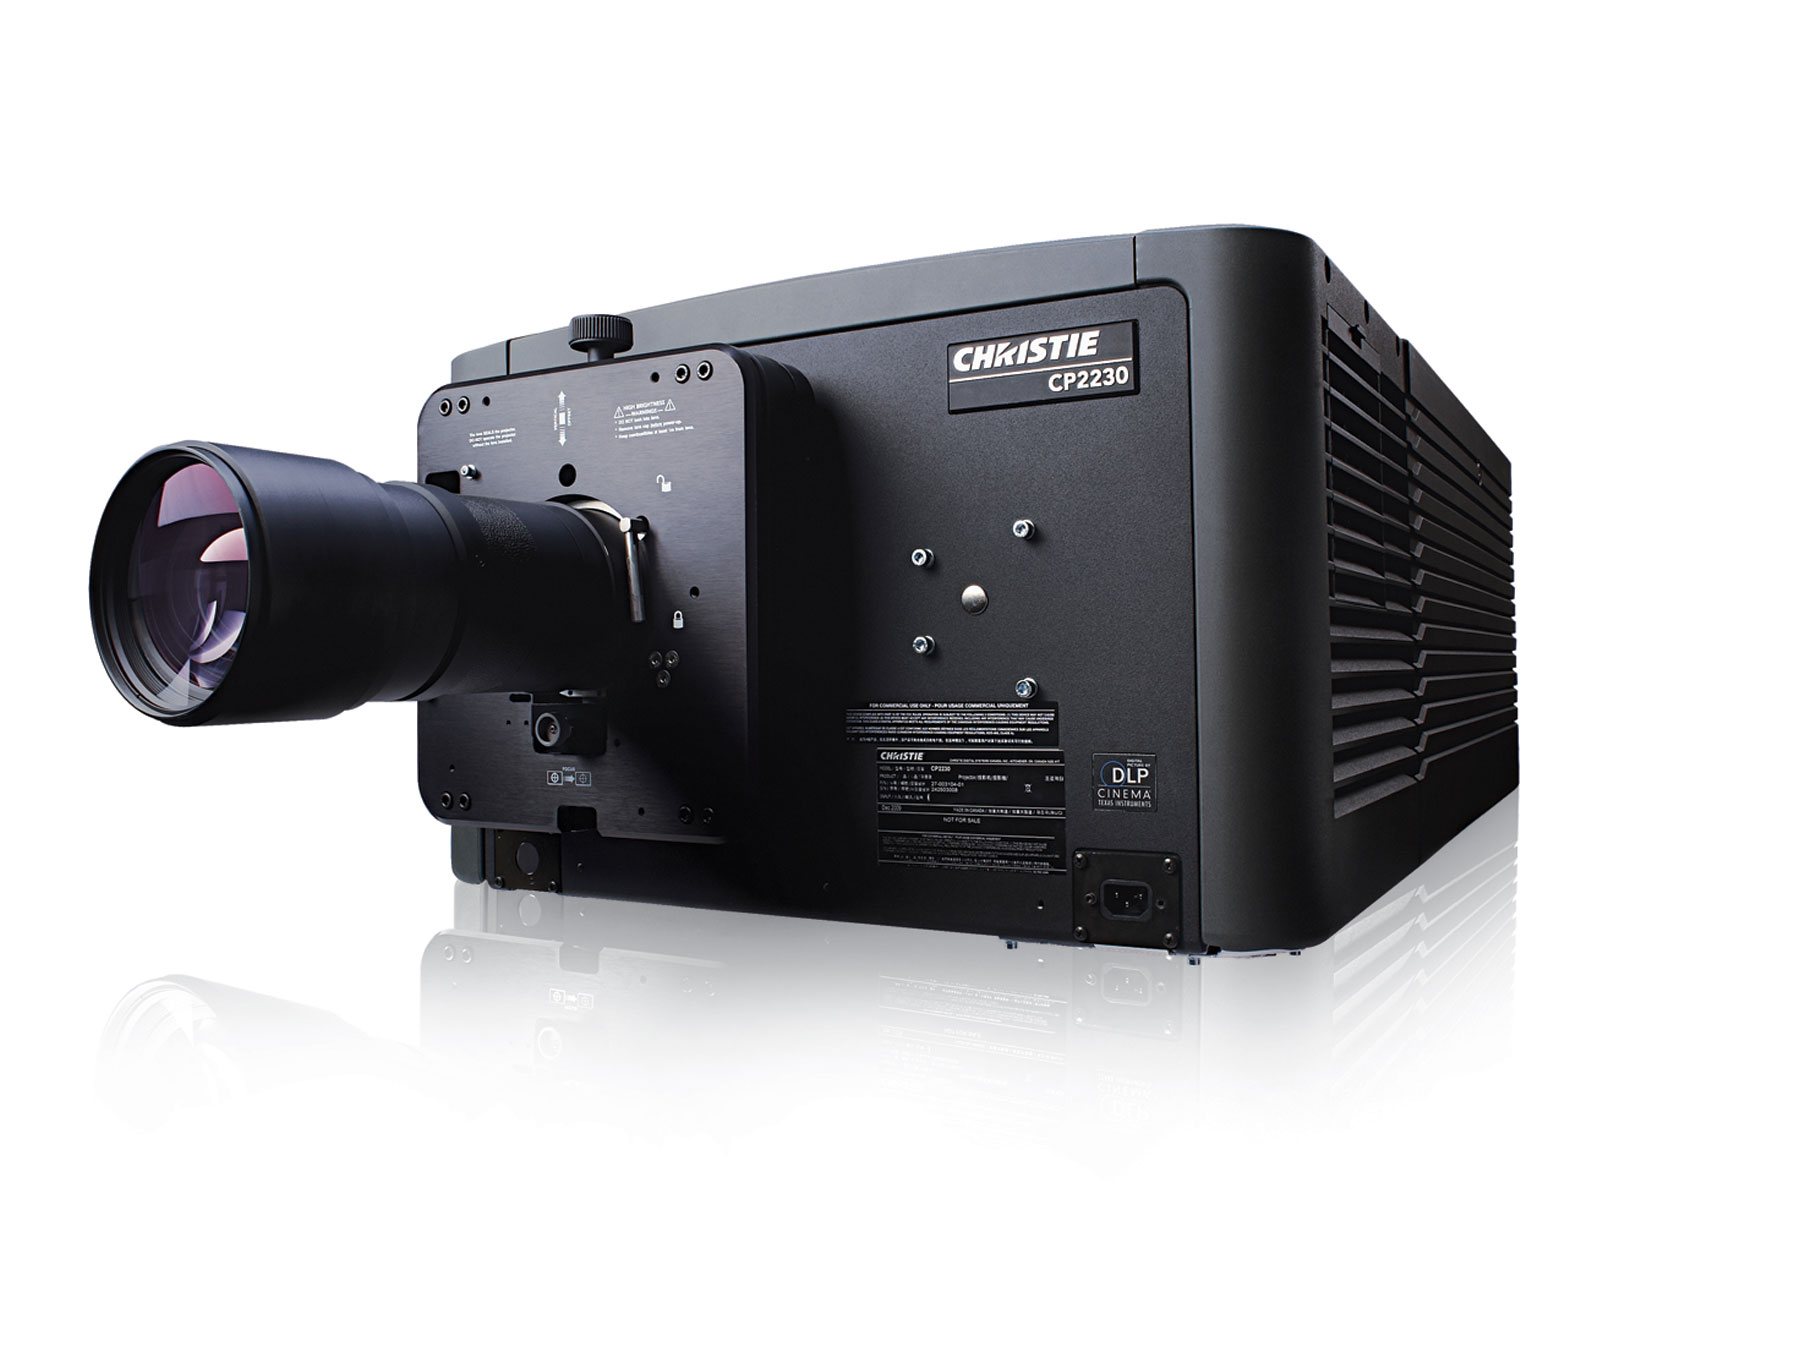 /globalassets/.catalog/products/images/christie-cp2230/gallery/christie-cp2230-digital-cinema-projector-image1.jpg